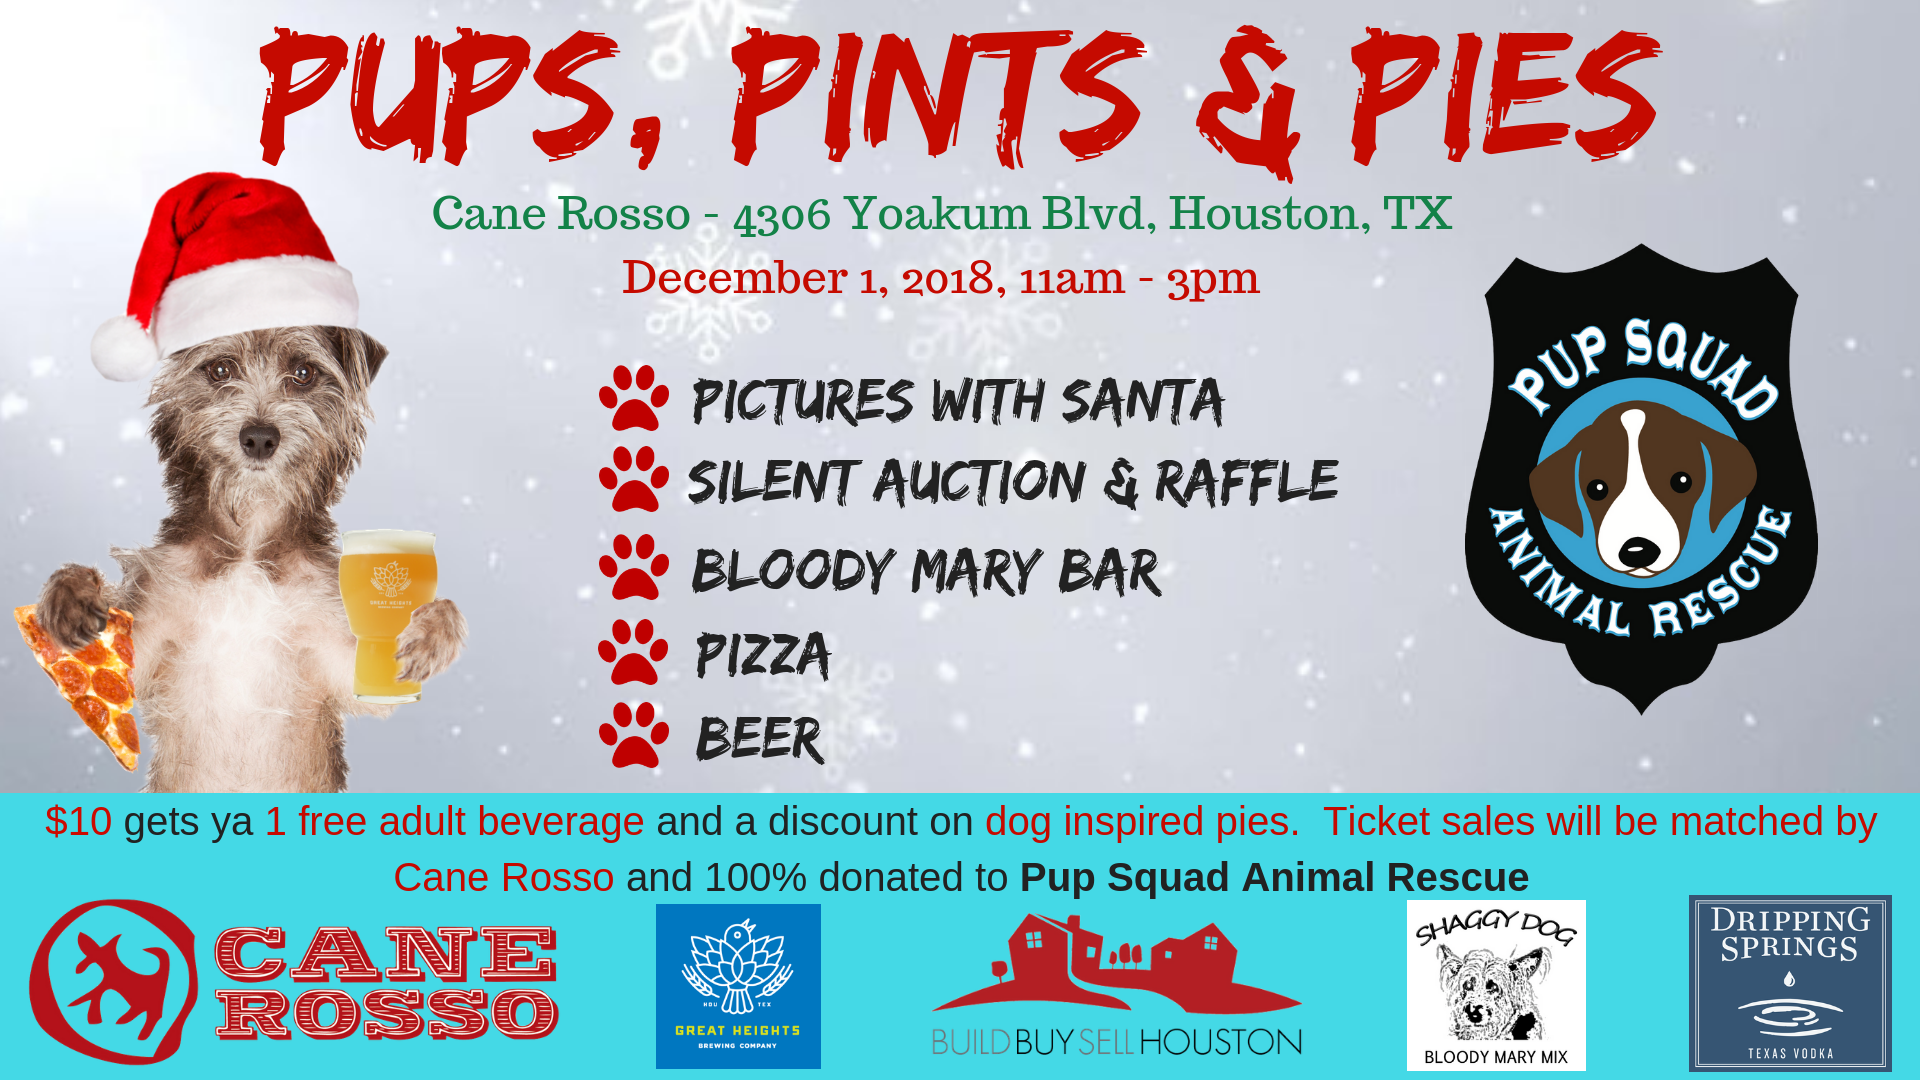 Puppies, Pints & Pies